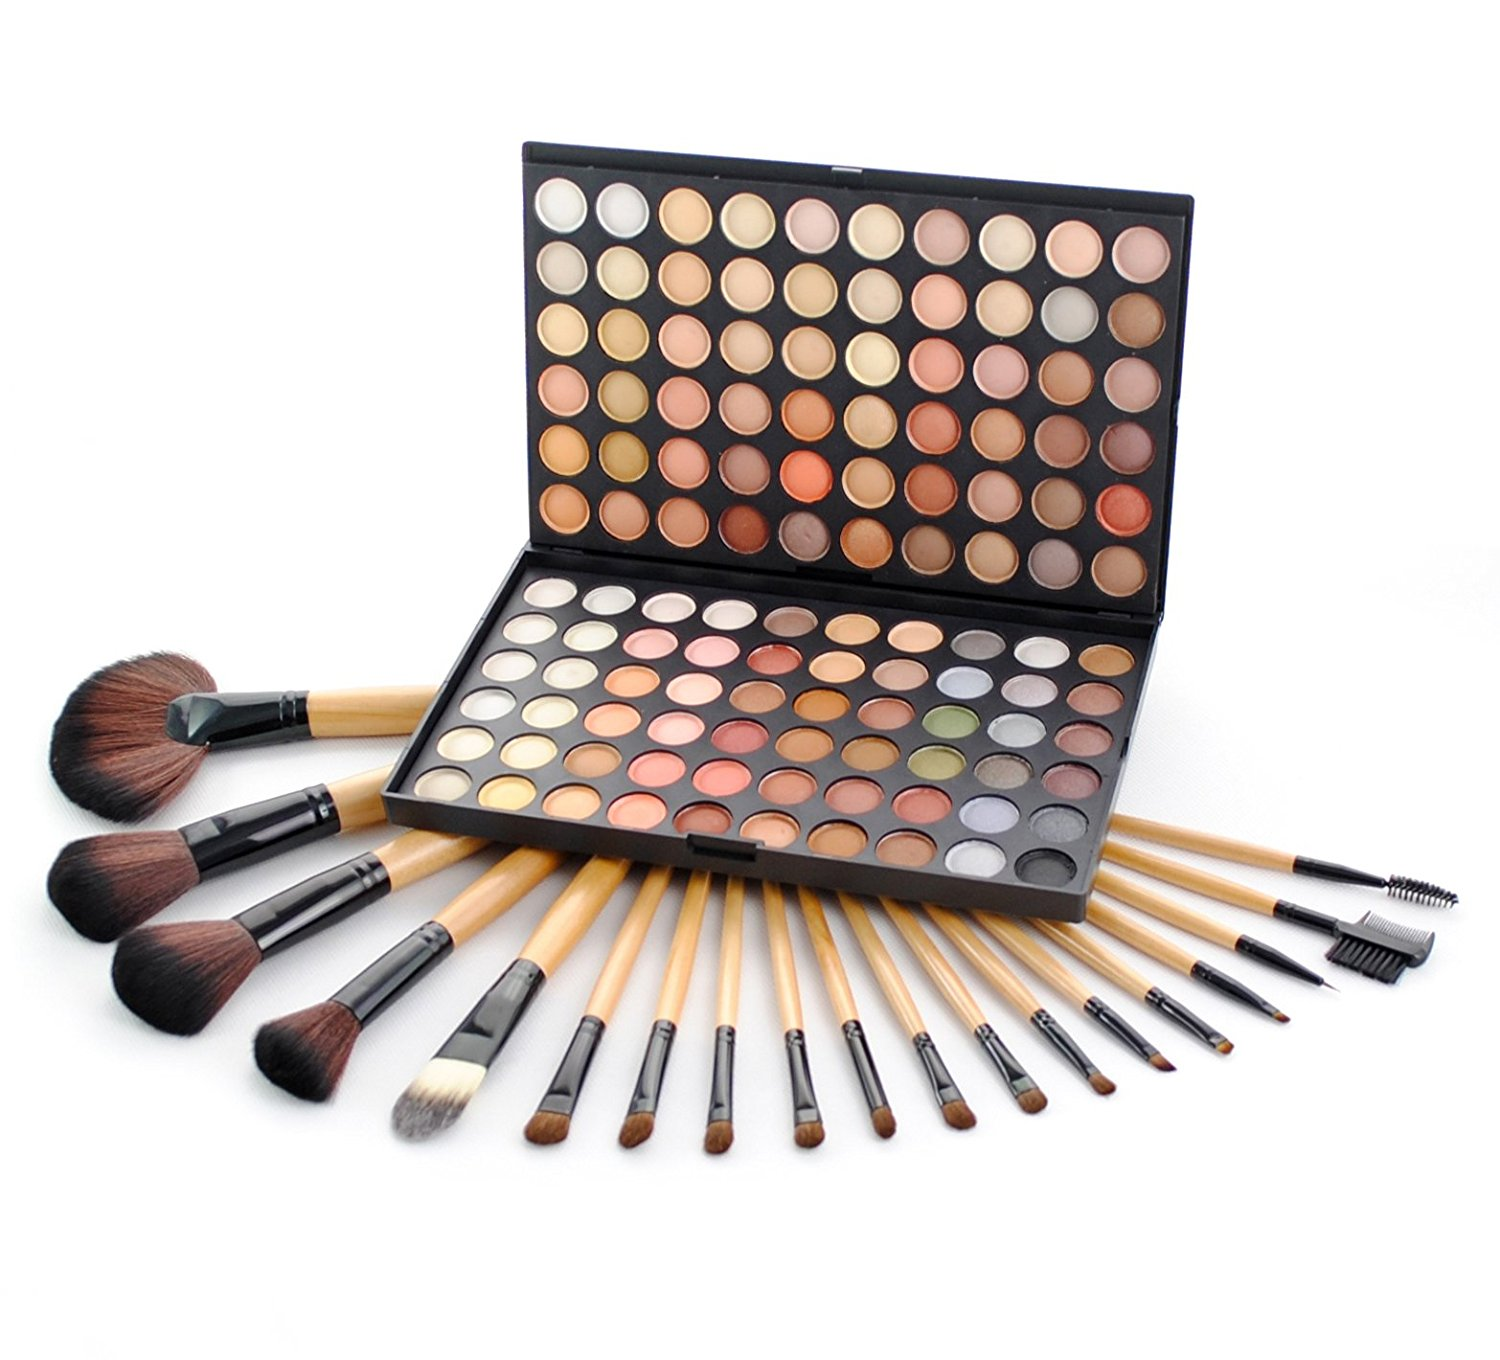 Frola Cosmetics Professional 120 Warm Colors Eyeshadow Makeup Palette #04 + 19 Pcs Makeup Brush Set by Frola Cosmetics